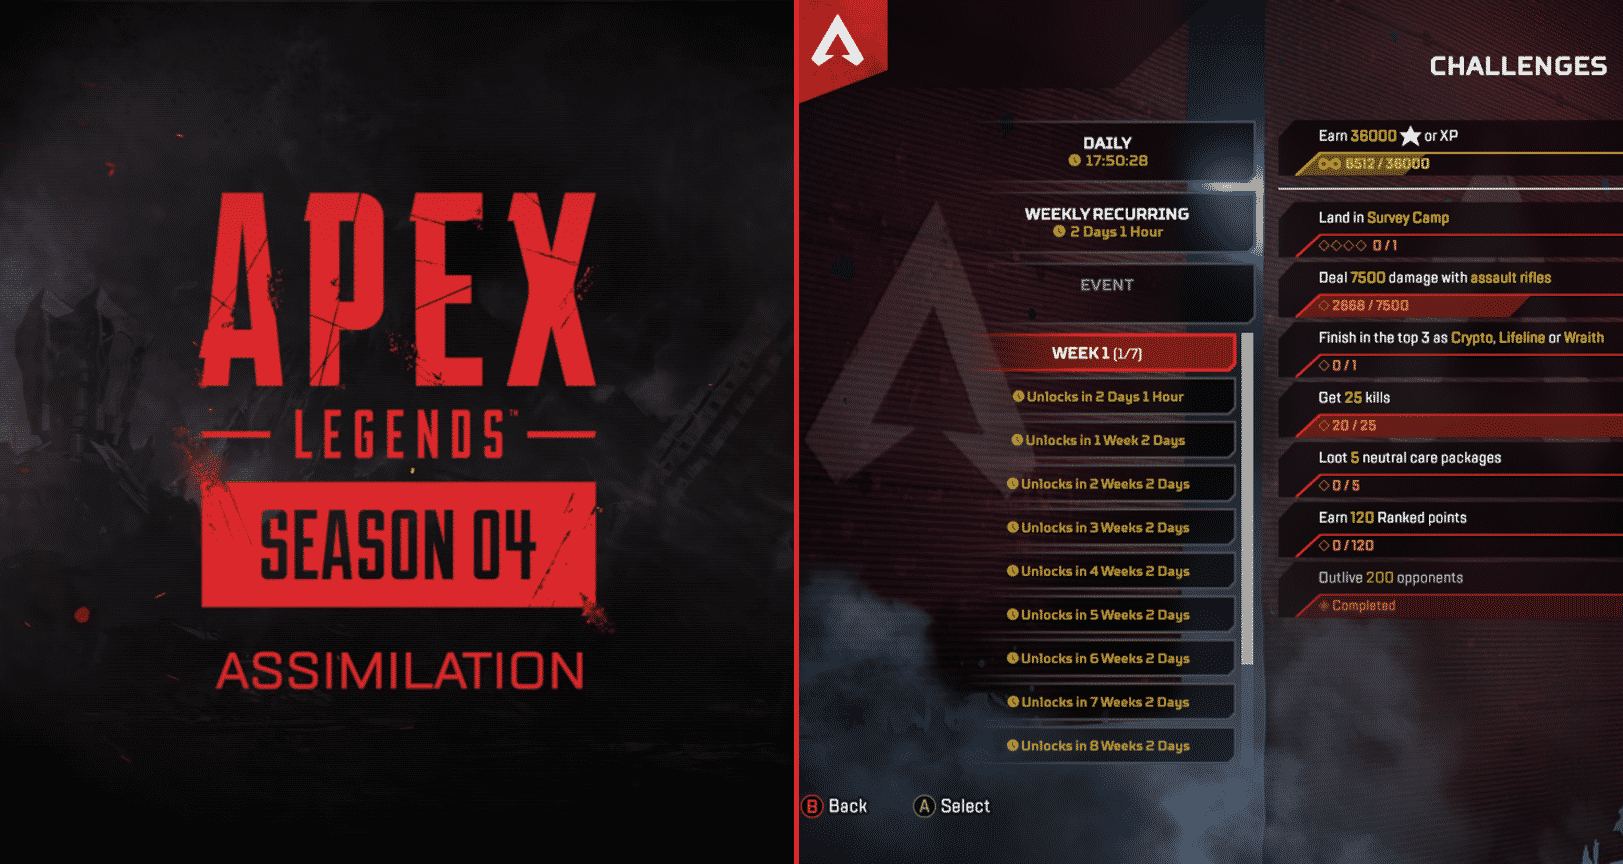 All Apex Legends Season 4 Assimilation Challenges